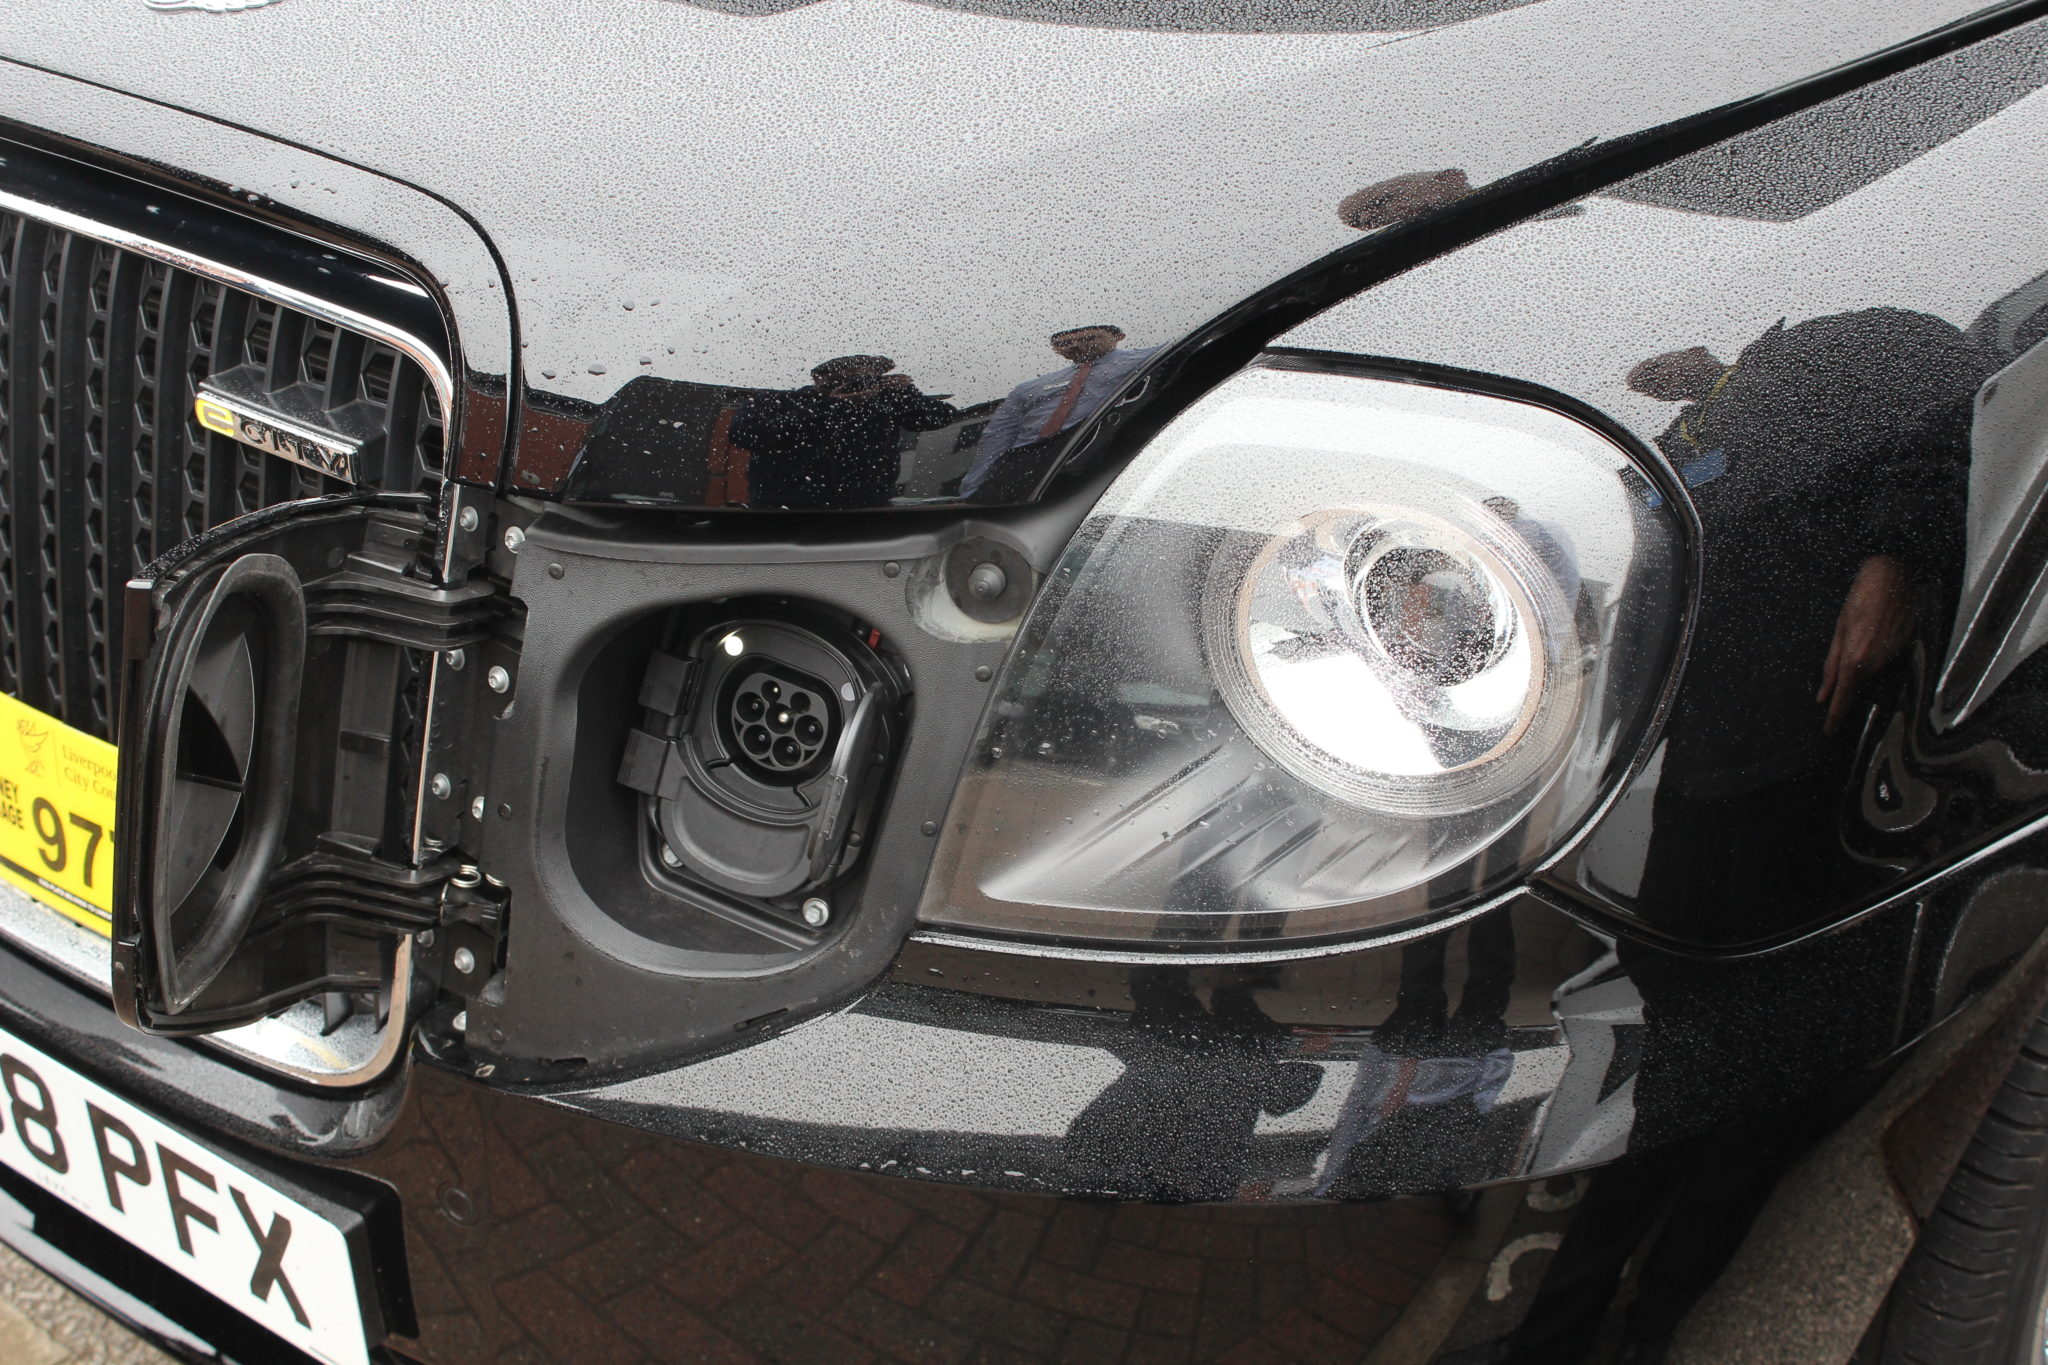 Electric Black Cab charging point